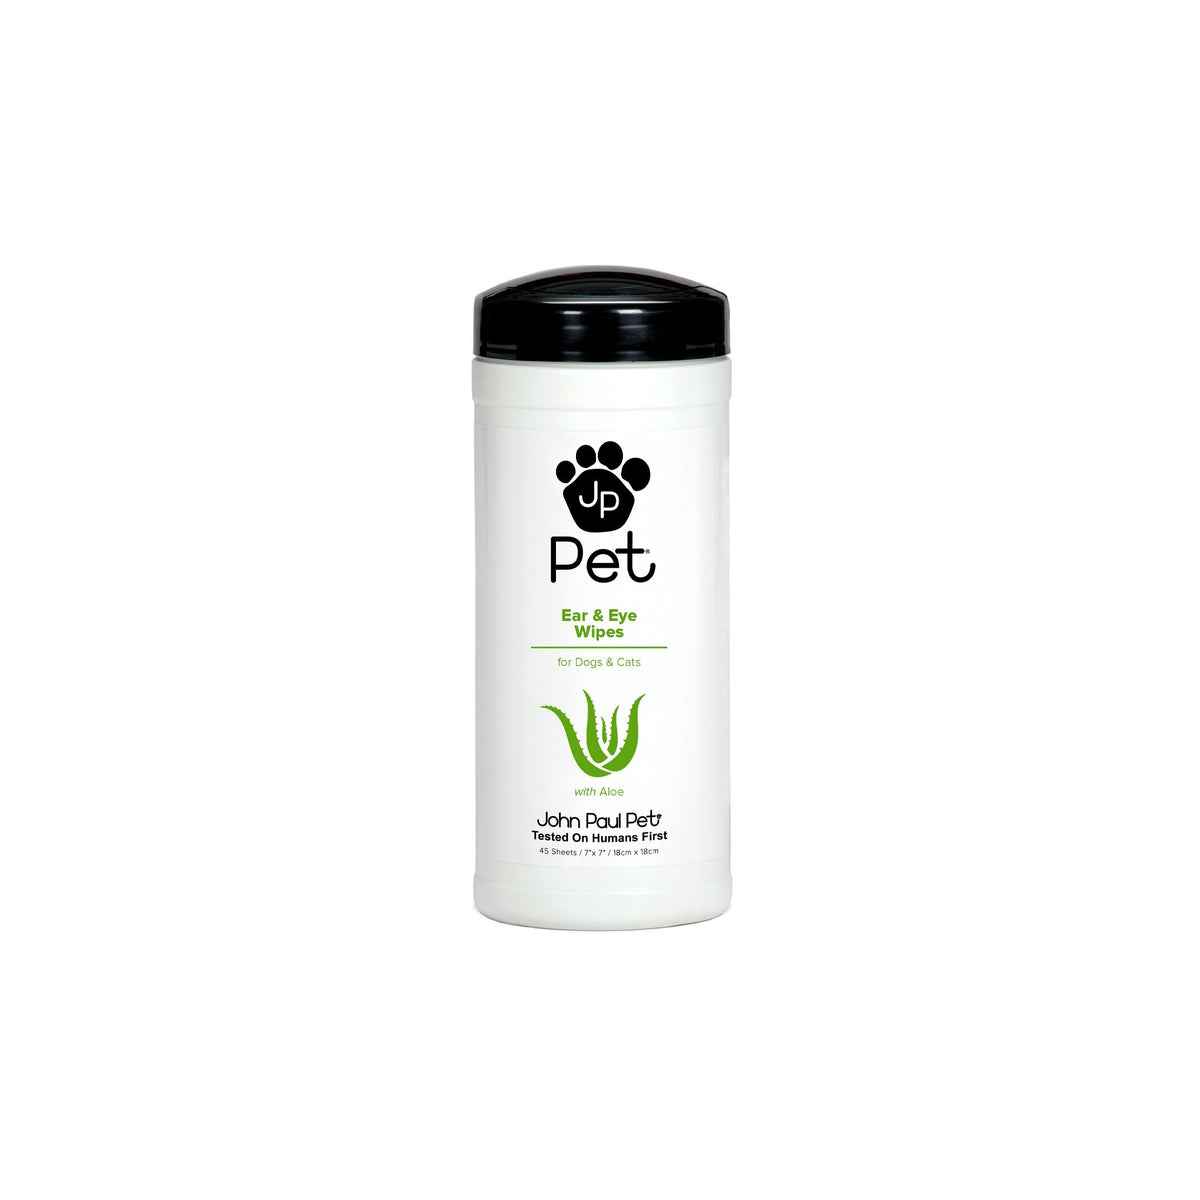 John Paul Pet Ear & Eye Pet Wipes 45